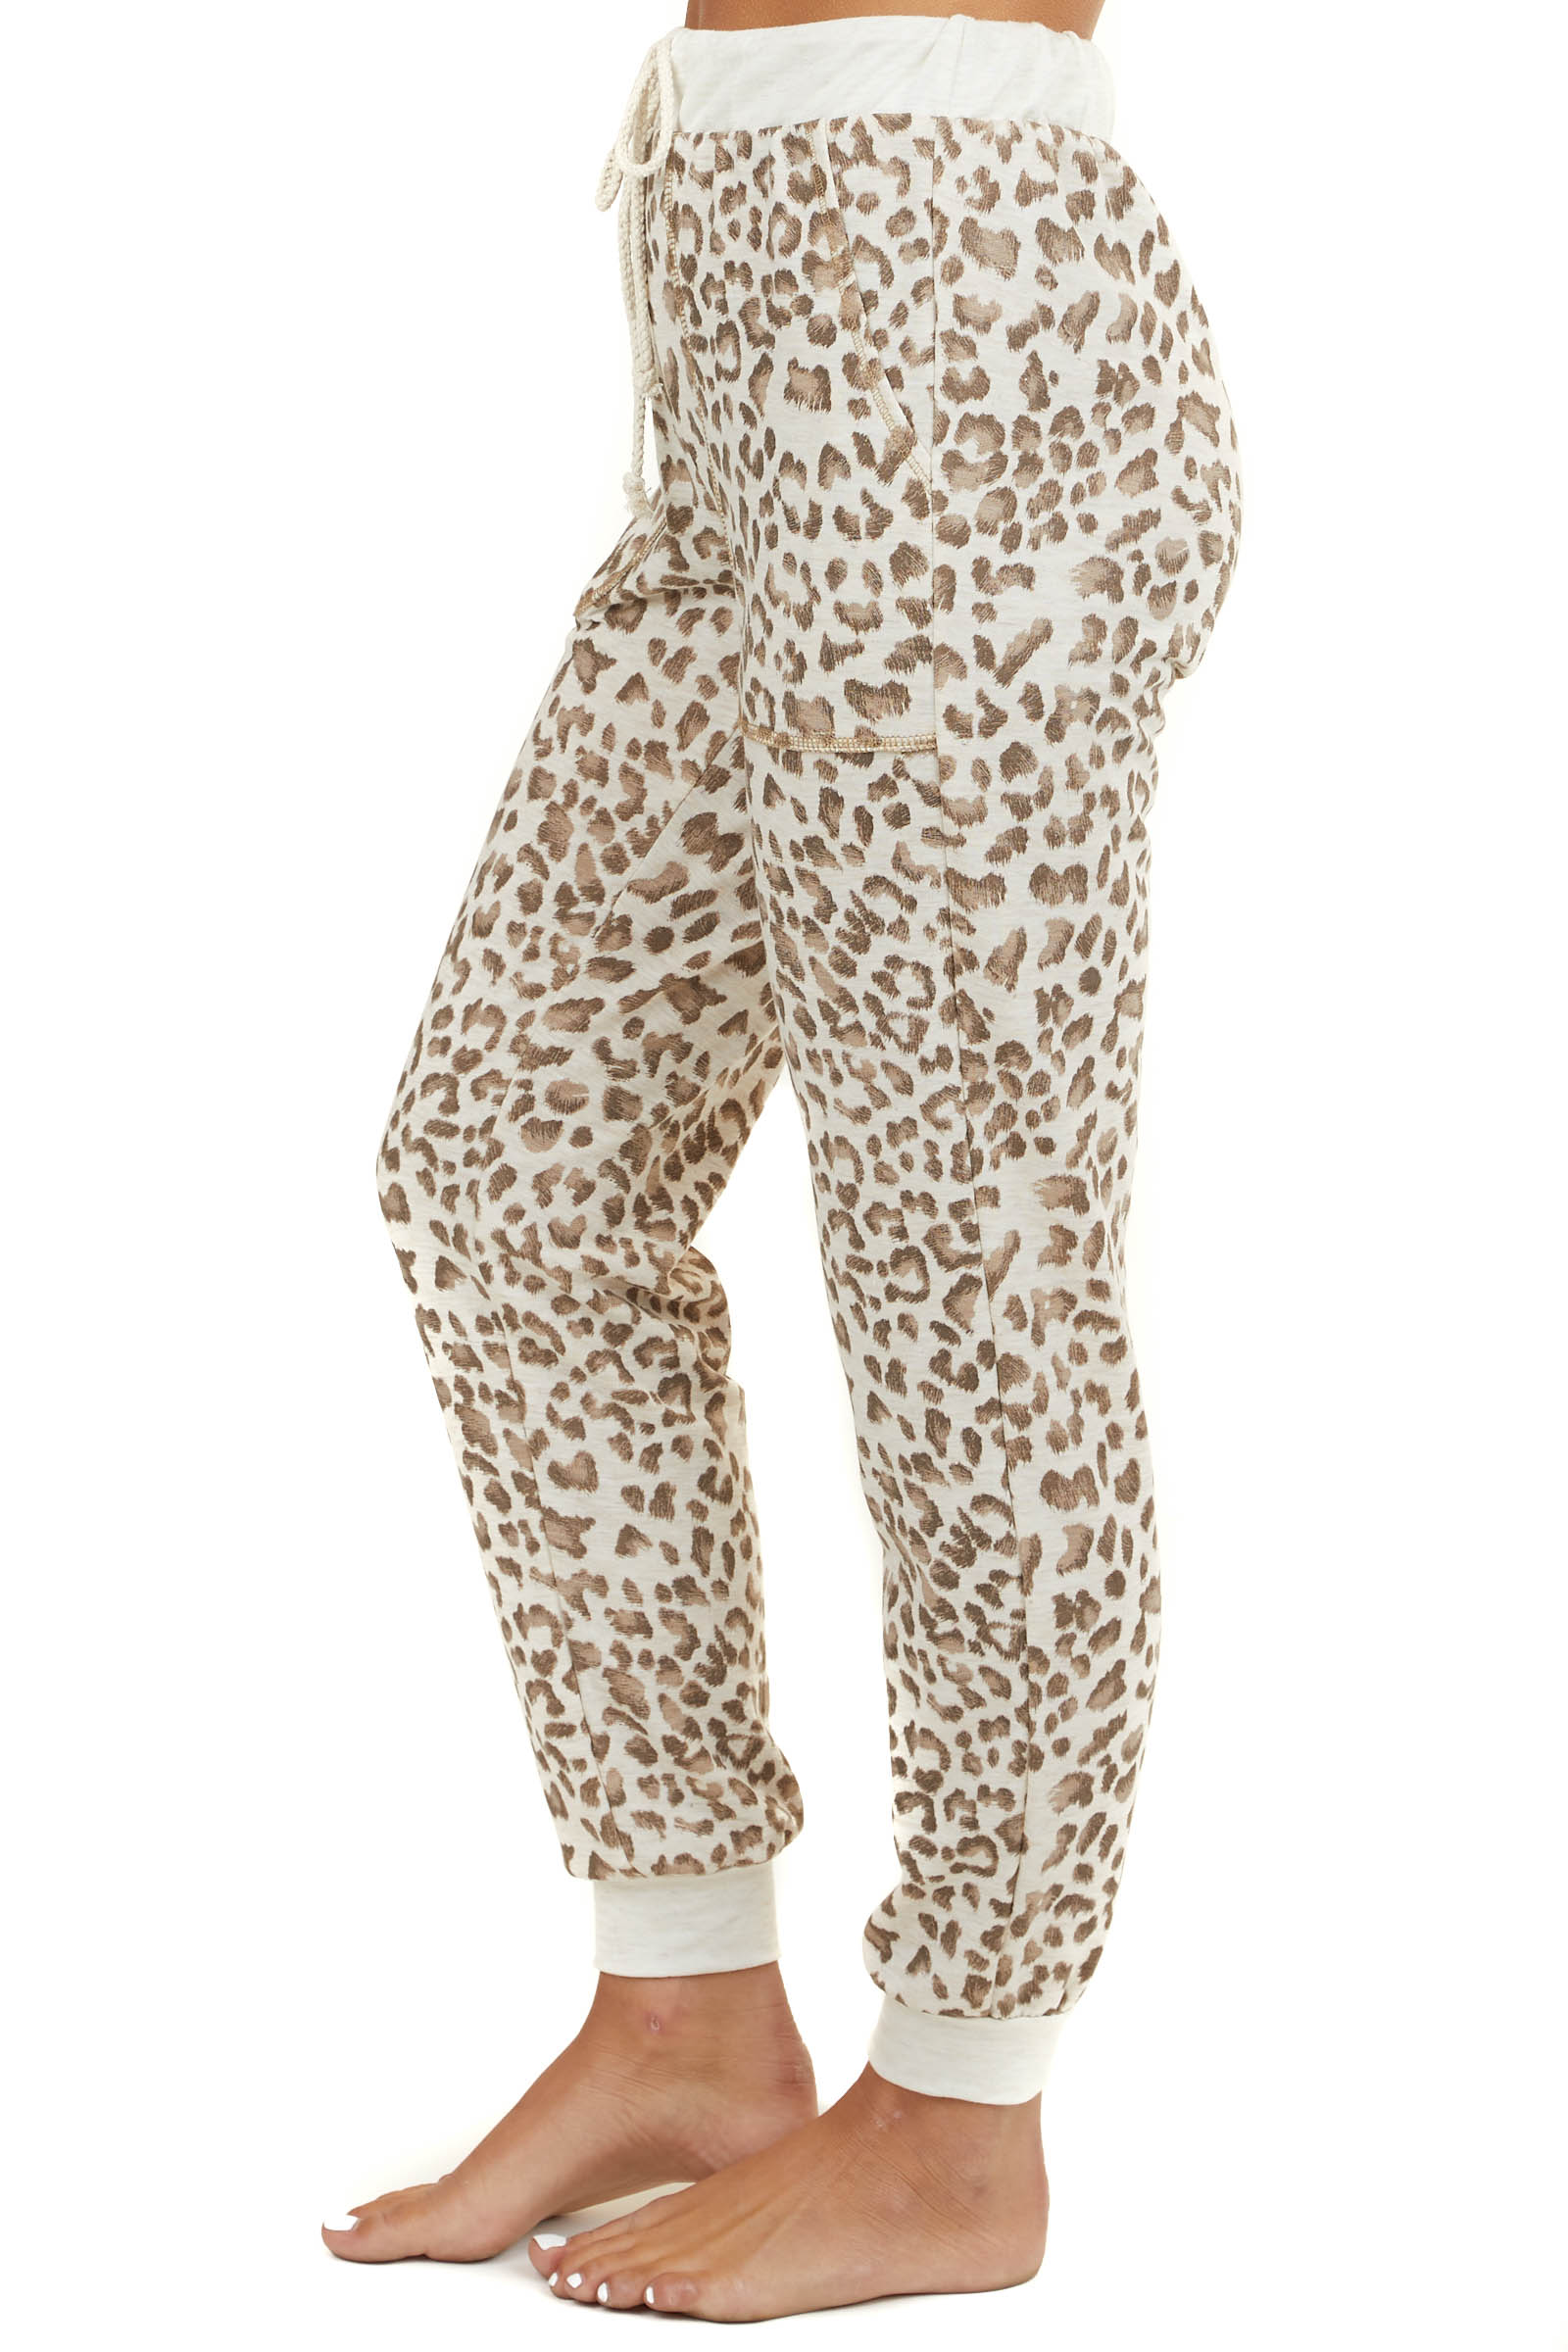 Cream Leopard Print Loungewear Knit Joggers with Side Pockets